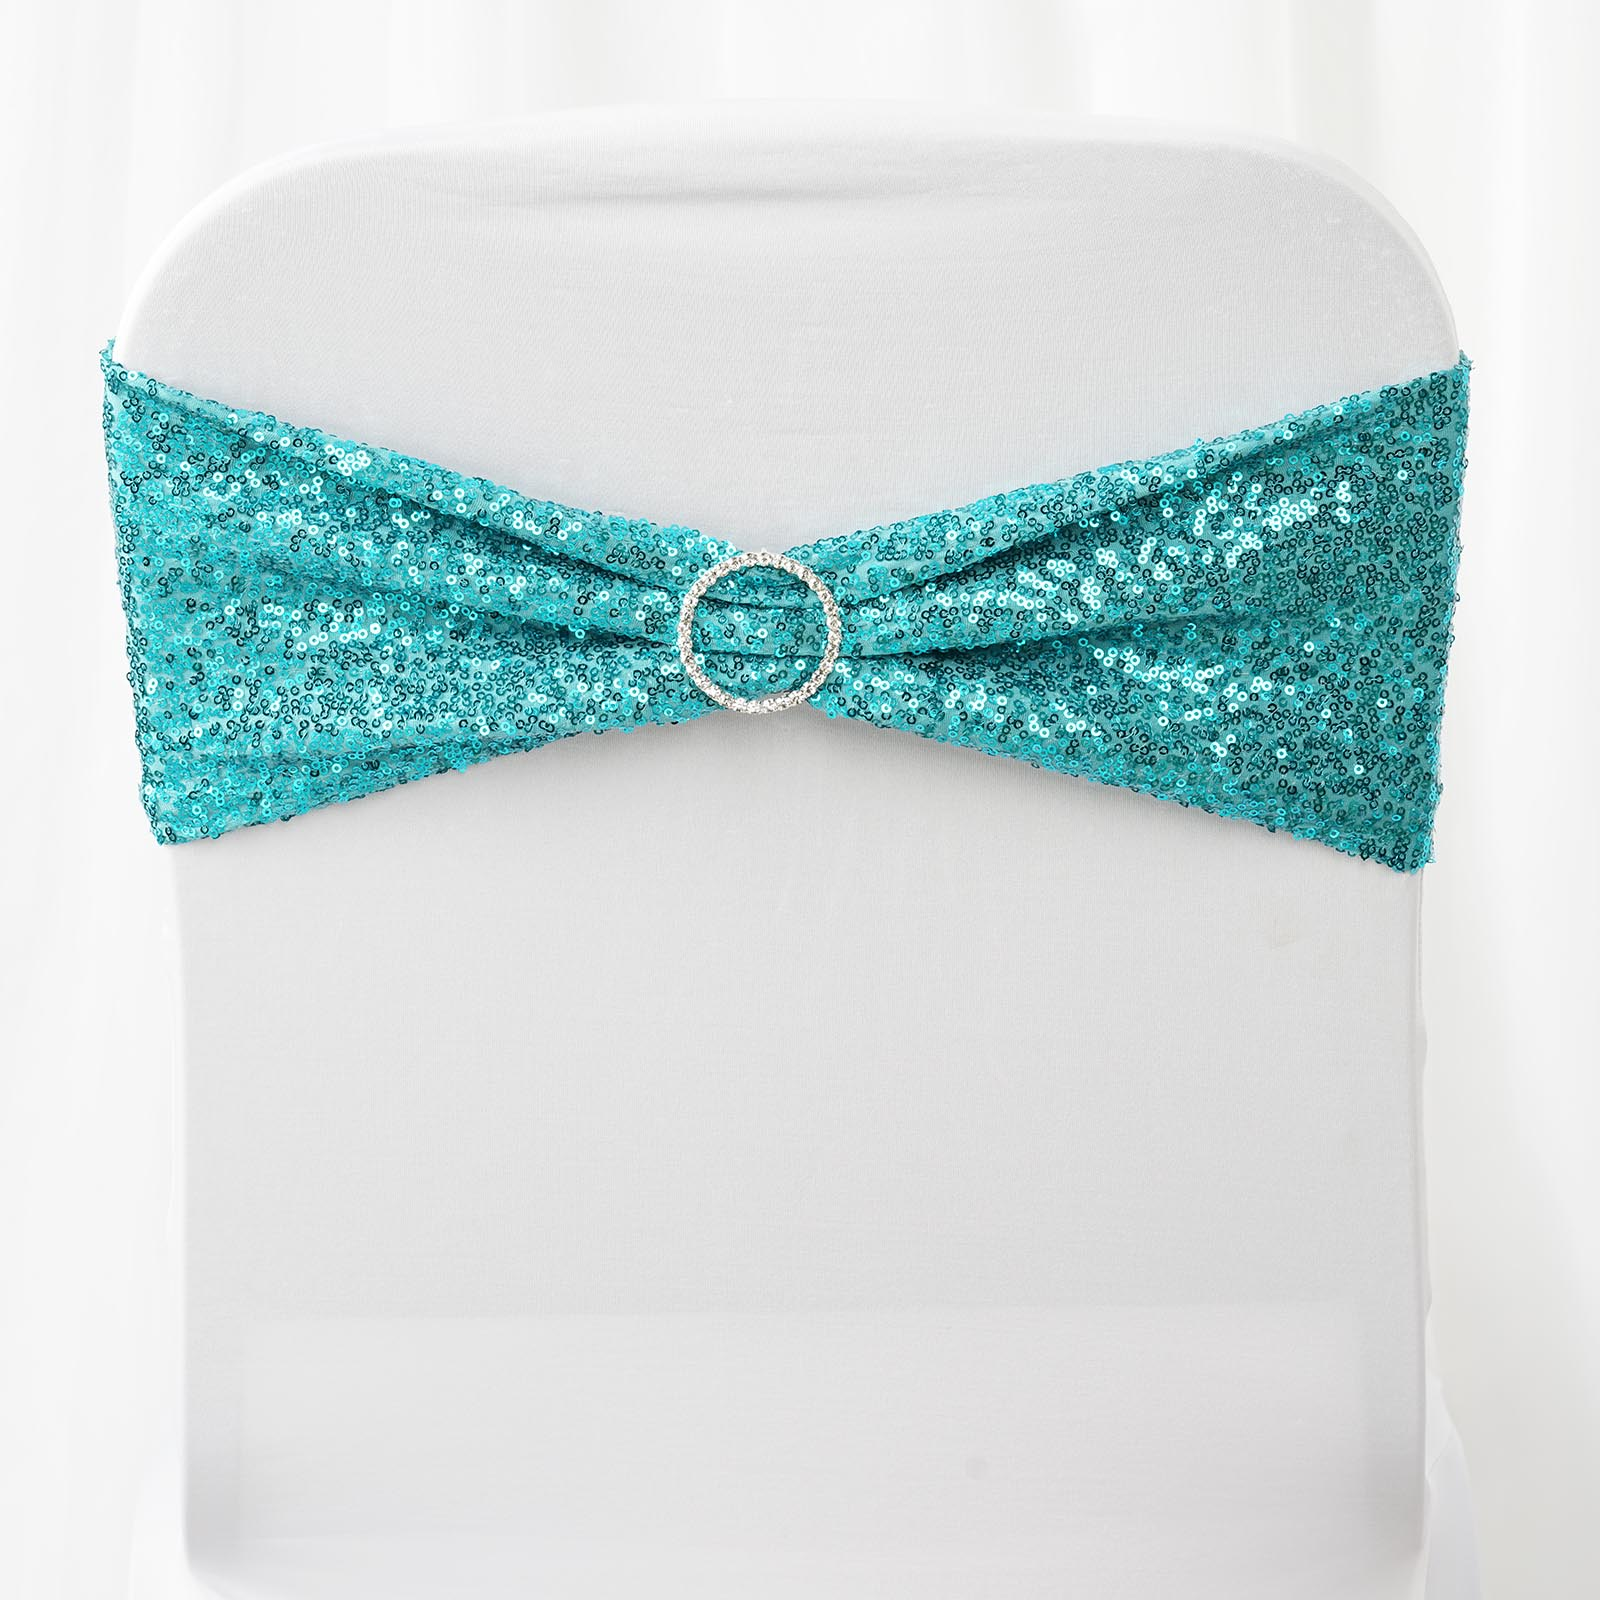 5pc x spandex sequined chair sash turquoise tablecloths